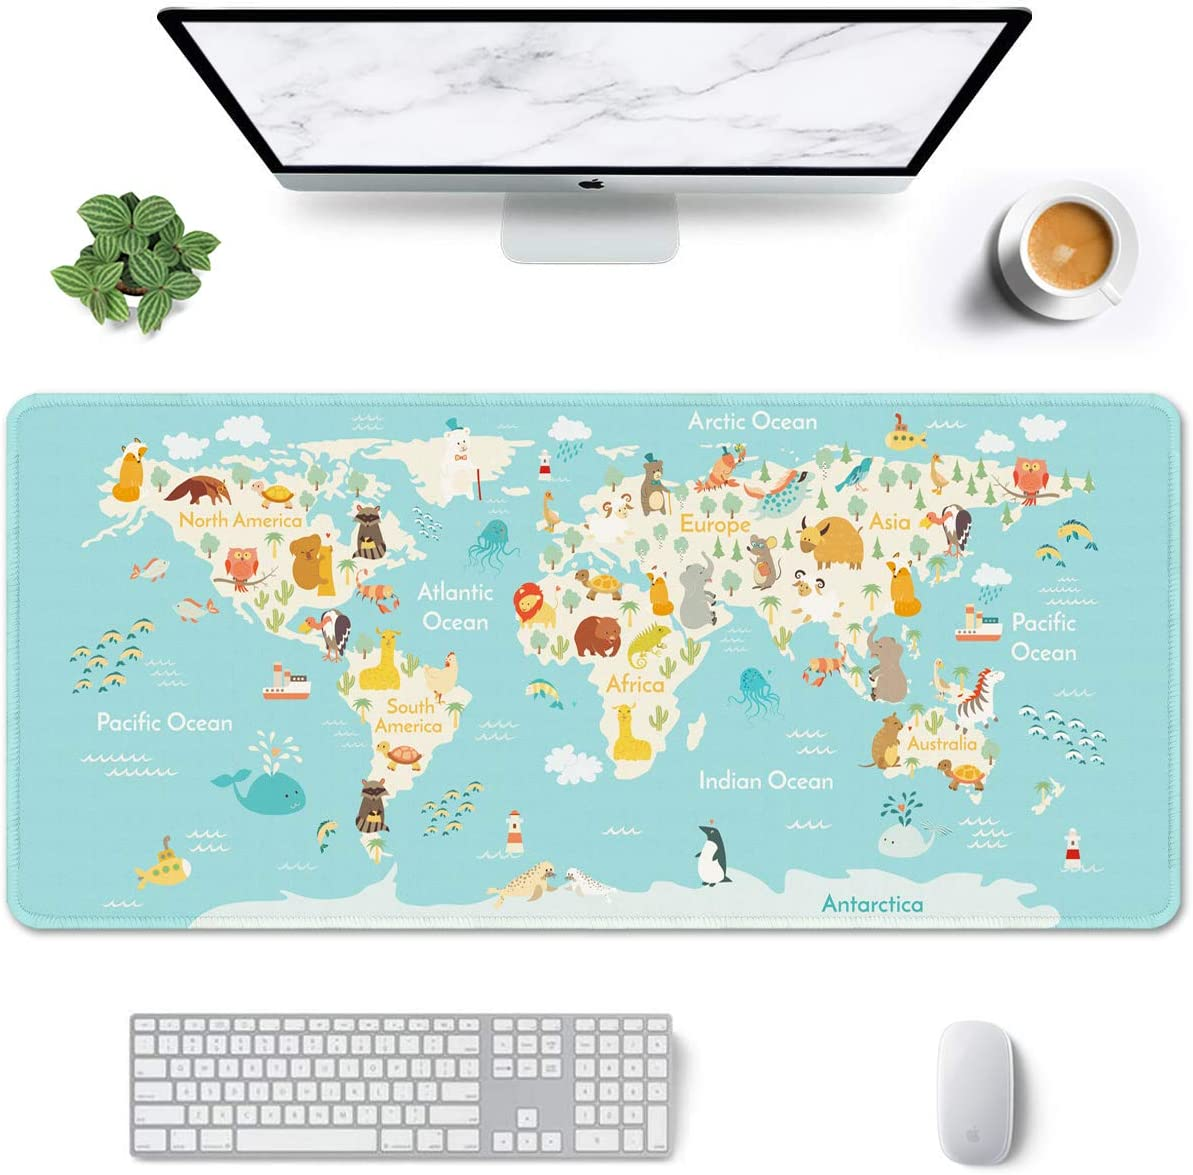 """Auhoahsil Large Mouse Pad, Full Desk XXL Extended Gaming Mouse Pad 35"""" X 15"""", Waterproof Desk Mat w/Stitched Edge, Non-Slip Laptop Computer Keyboard Mousepad for Office & Home, Cute Animal Map Design"""